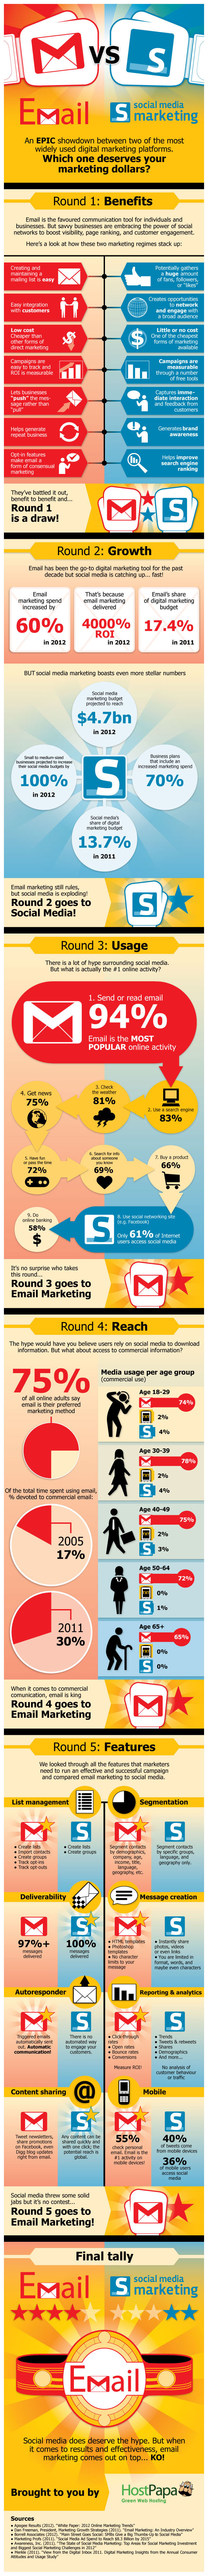 Email Marketing y Social Media